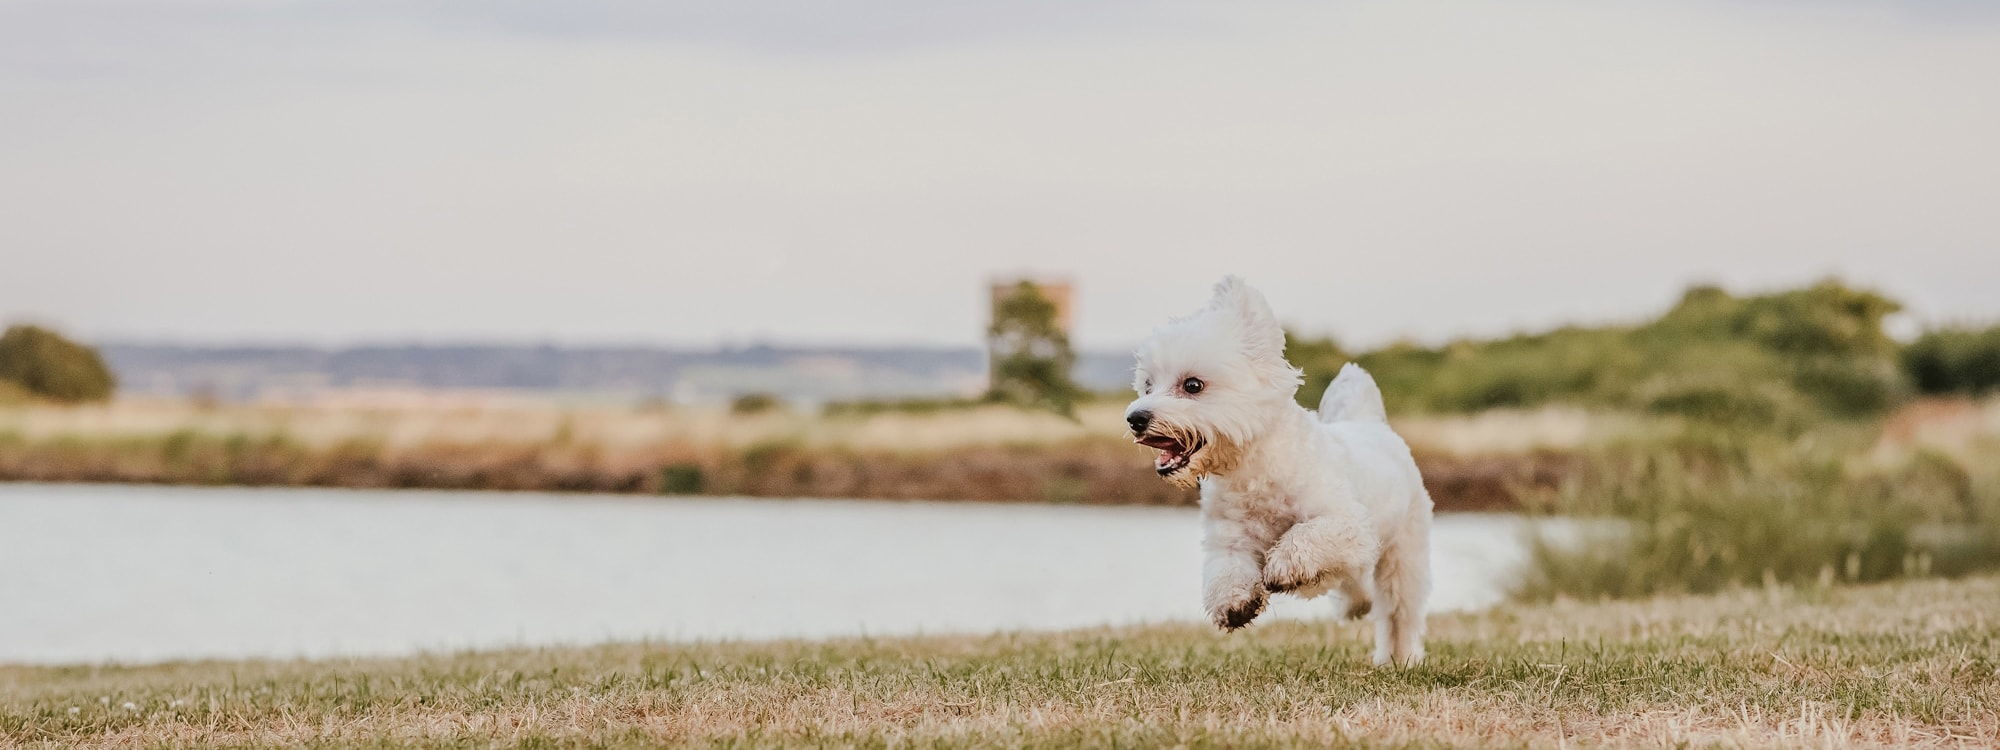 Action Shot of Dog Running by Lake at Coalhouse Fort Tilbury, Essex